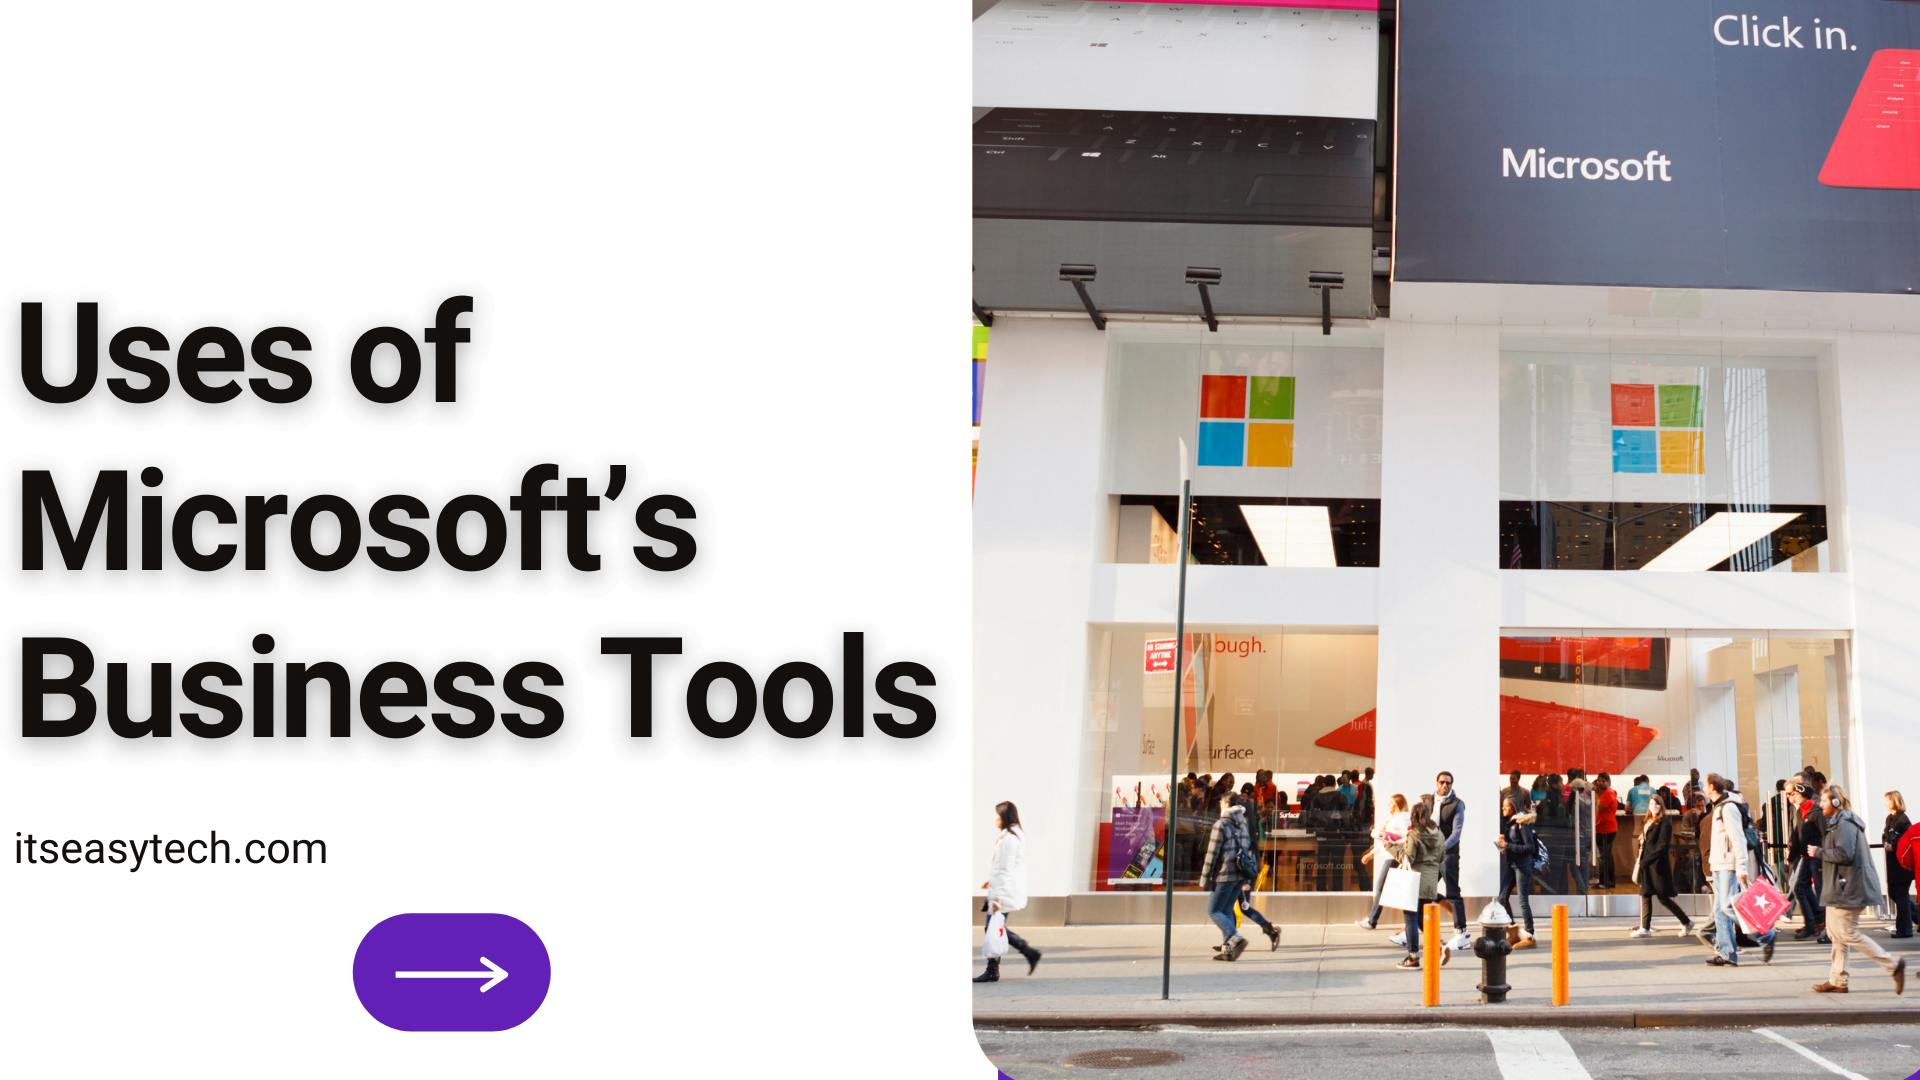 Uses of Microsoft Business Tools